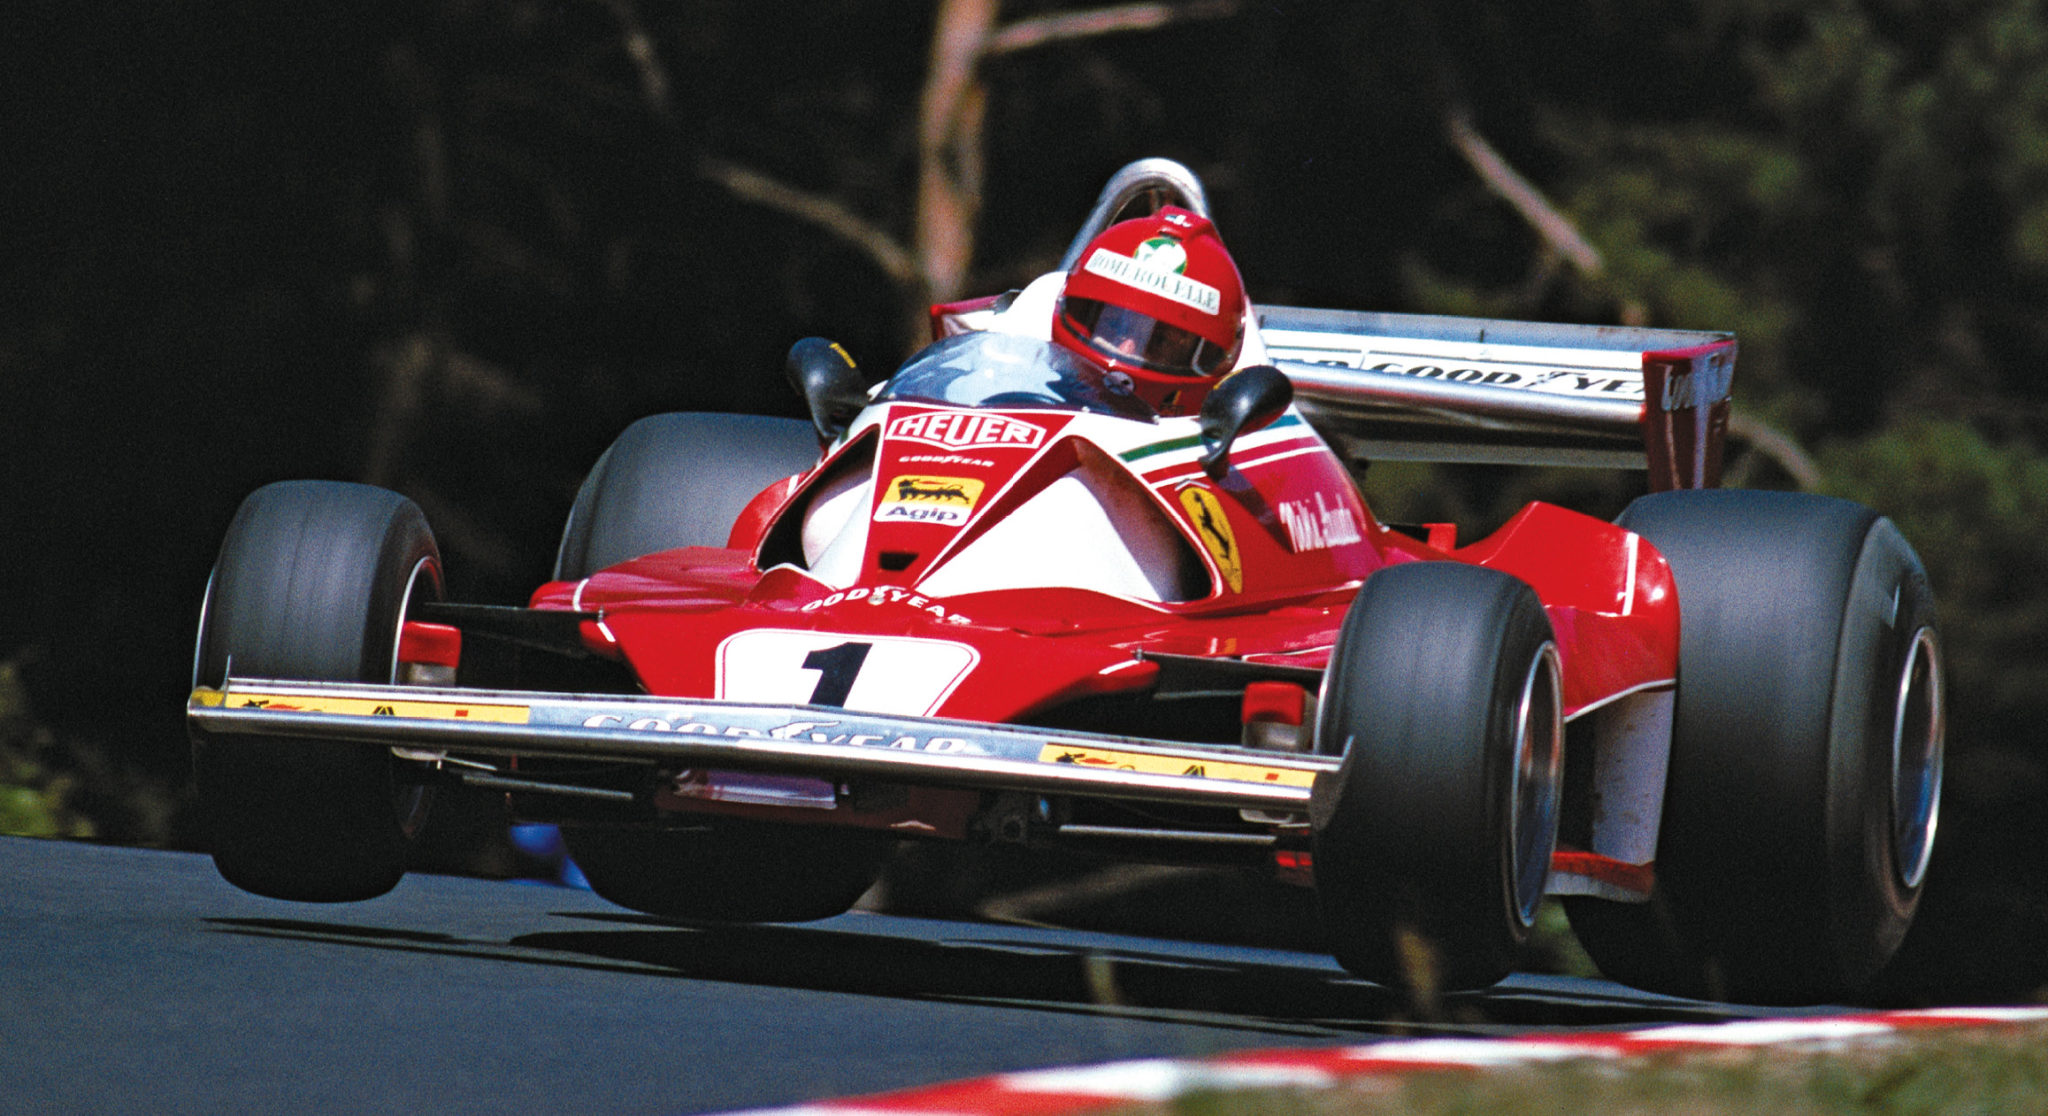 Lauda flying at the Nürburgring in 1976, before the accident that triggered his amazing comeback